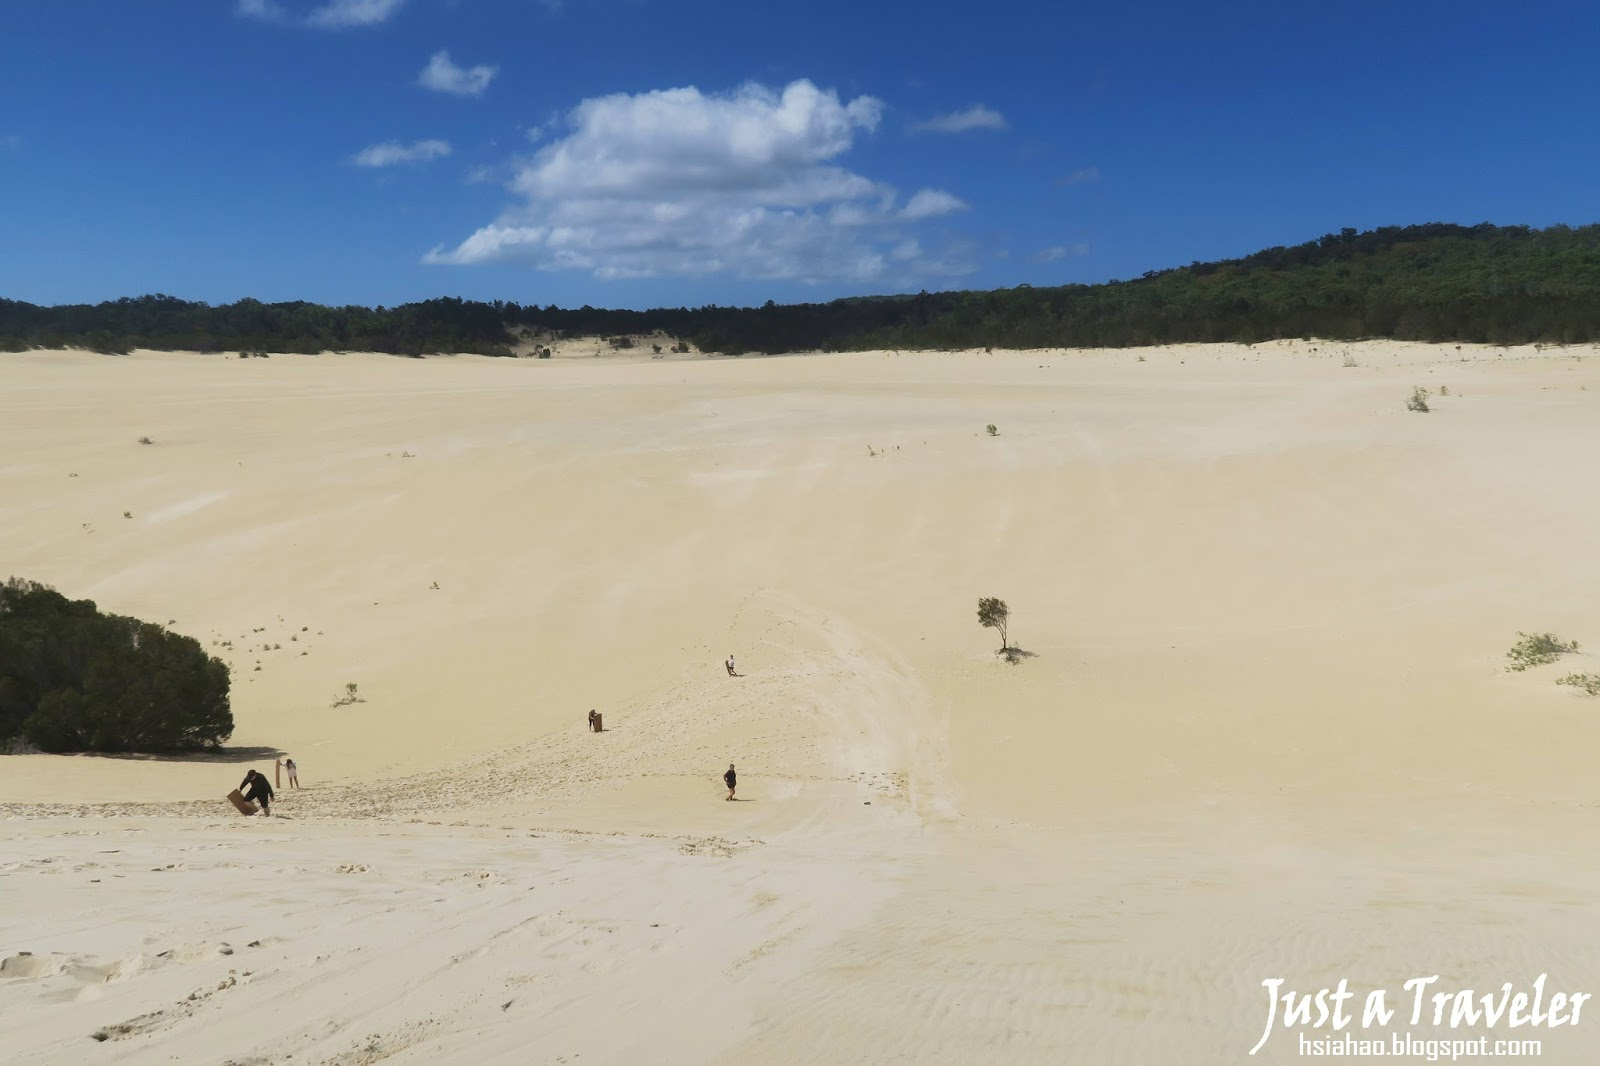 布里斯本-摩頓島-景點-沙漠-Desert-推薦-Sand-Boarding-澳洲-Brisbane-Moreton-Island-Tourist-Attraction-Travel-Australia